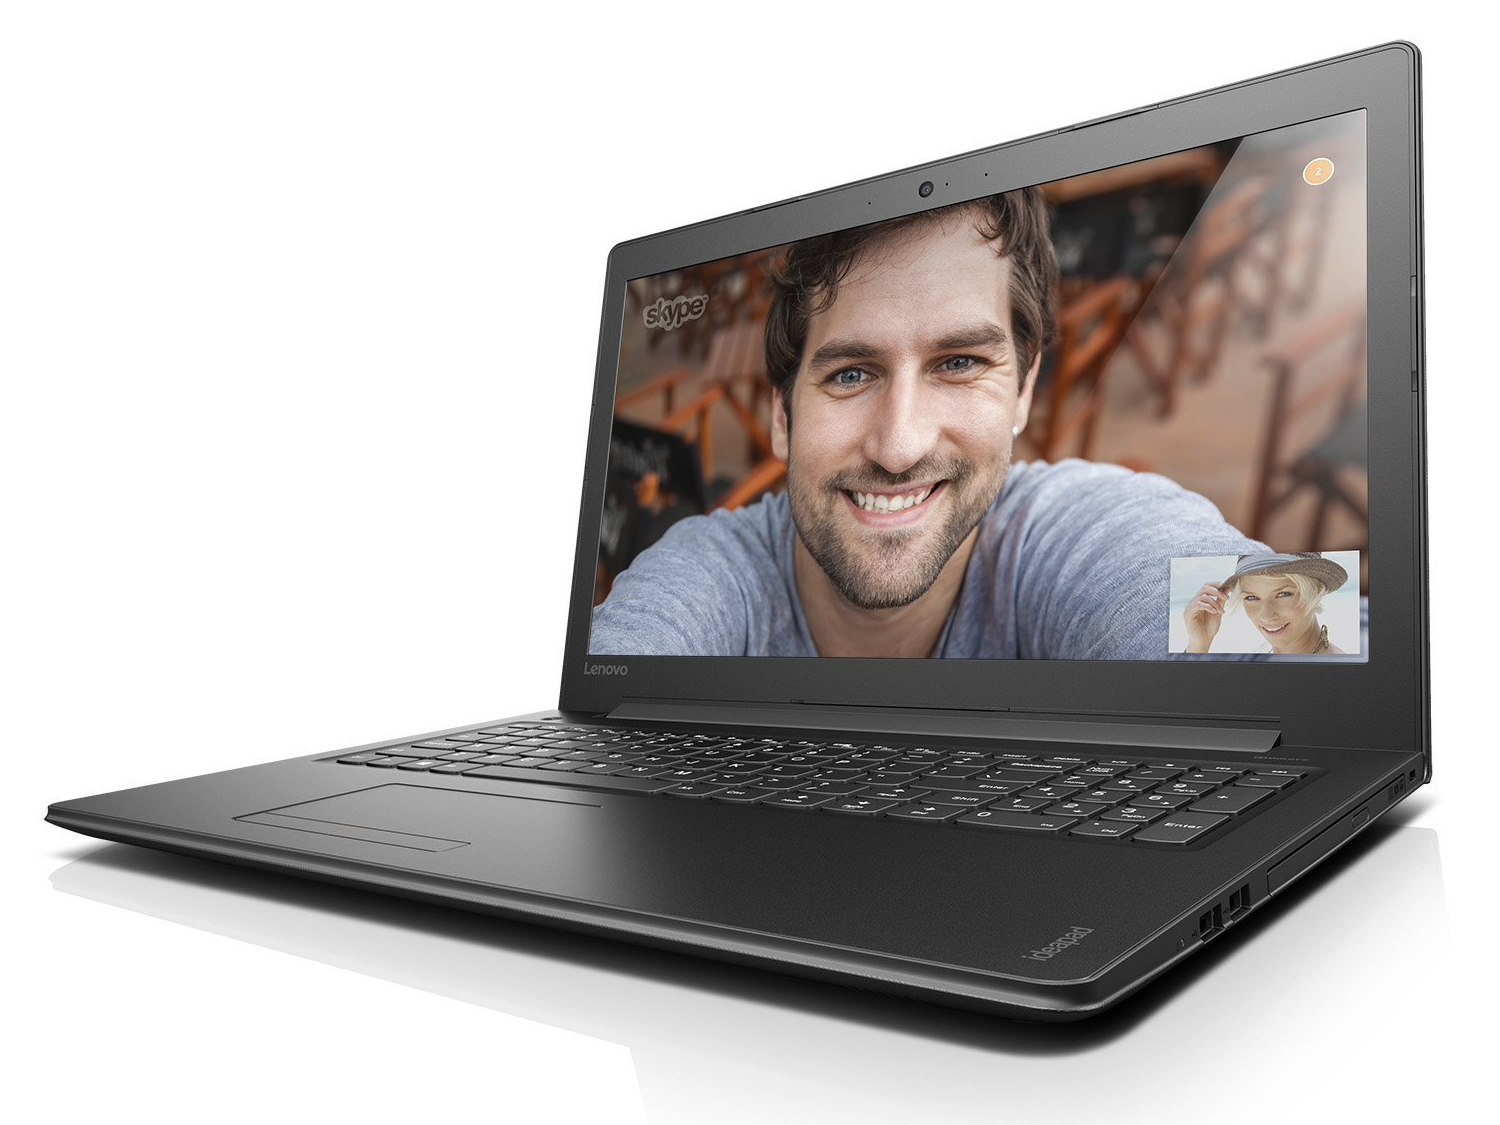 596d5298e In review  Lenovo Ideapad 310-15ISK (80SM006AGE). Test model provided by  Lenovo Germany.